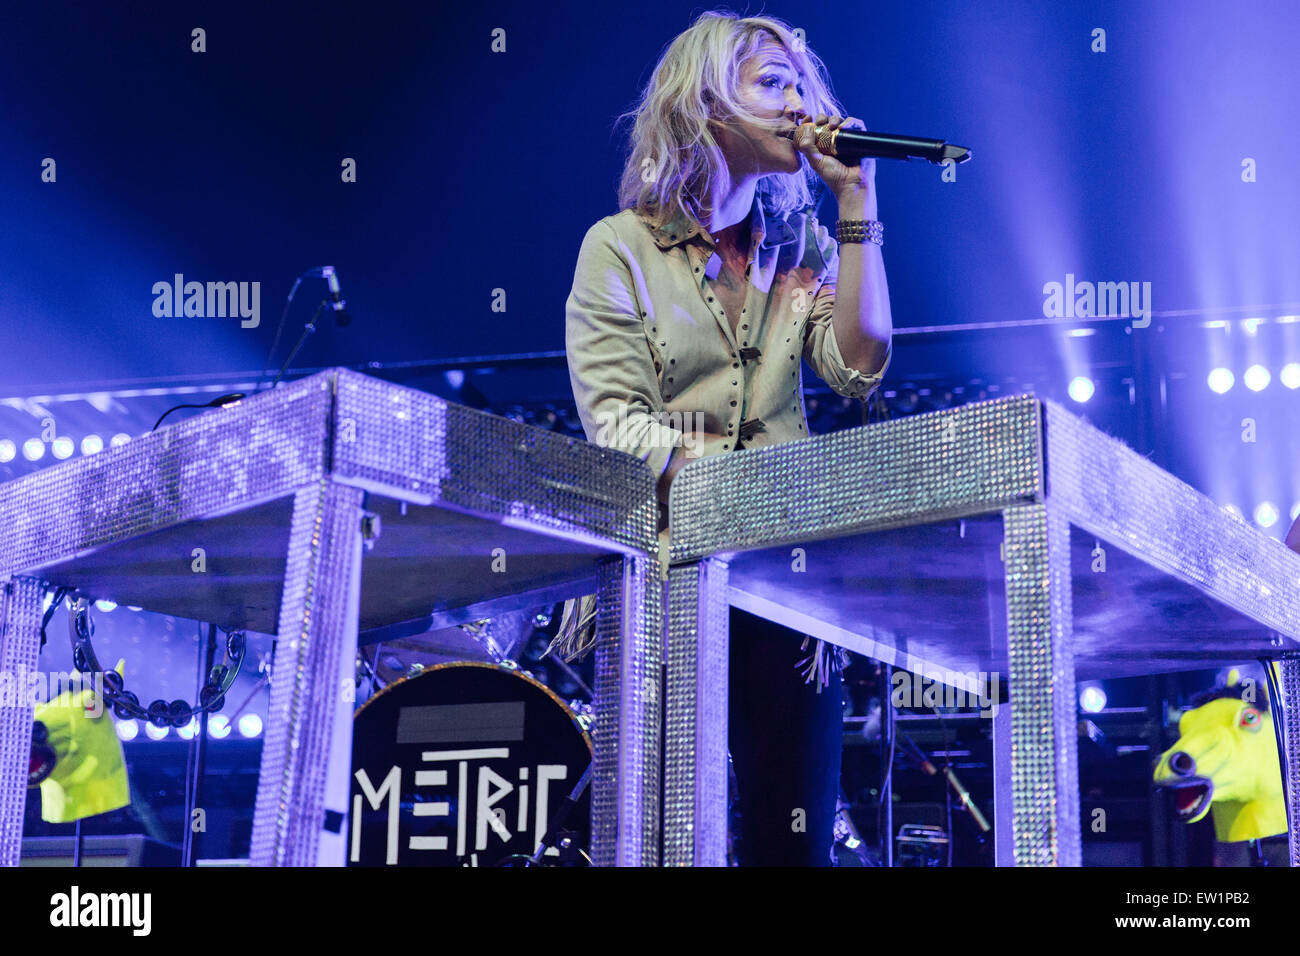 Rosemont, Illinois, USA. 15th June, 2015. Musician EMILY HAINES of Metric performs live on stage at the Allstate Stock Photo